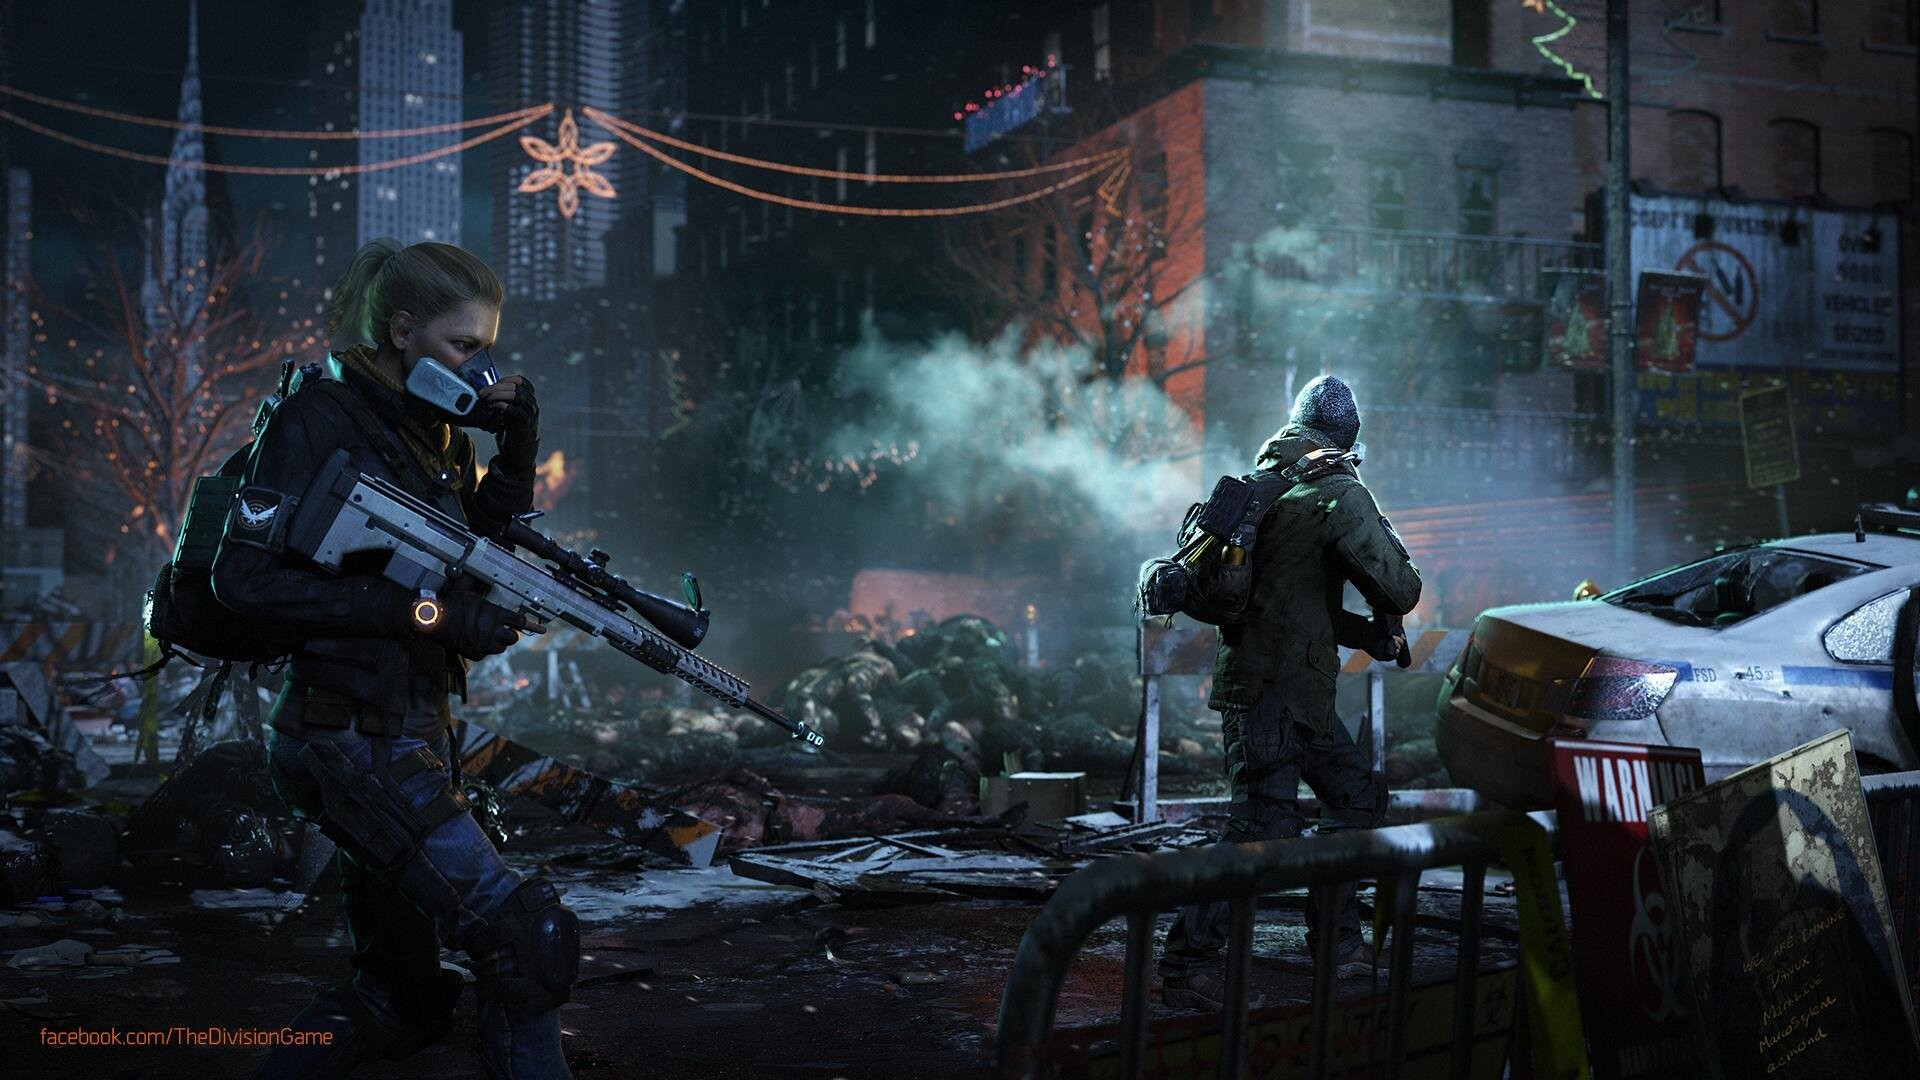 … the division wallpaper mydivision net; division female characters  wallpaper walldevil …